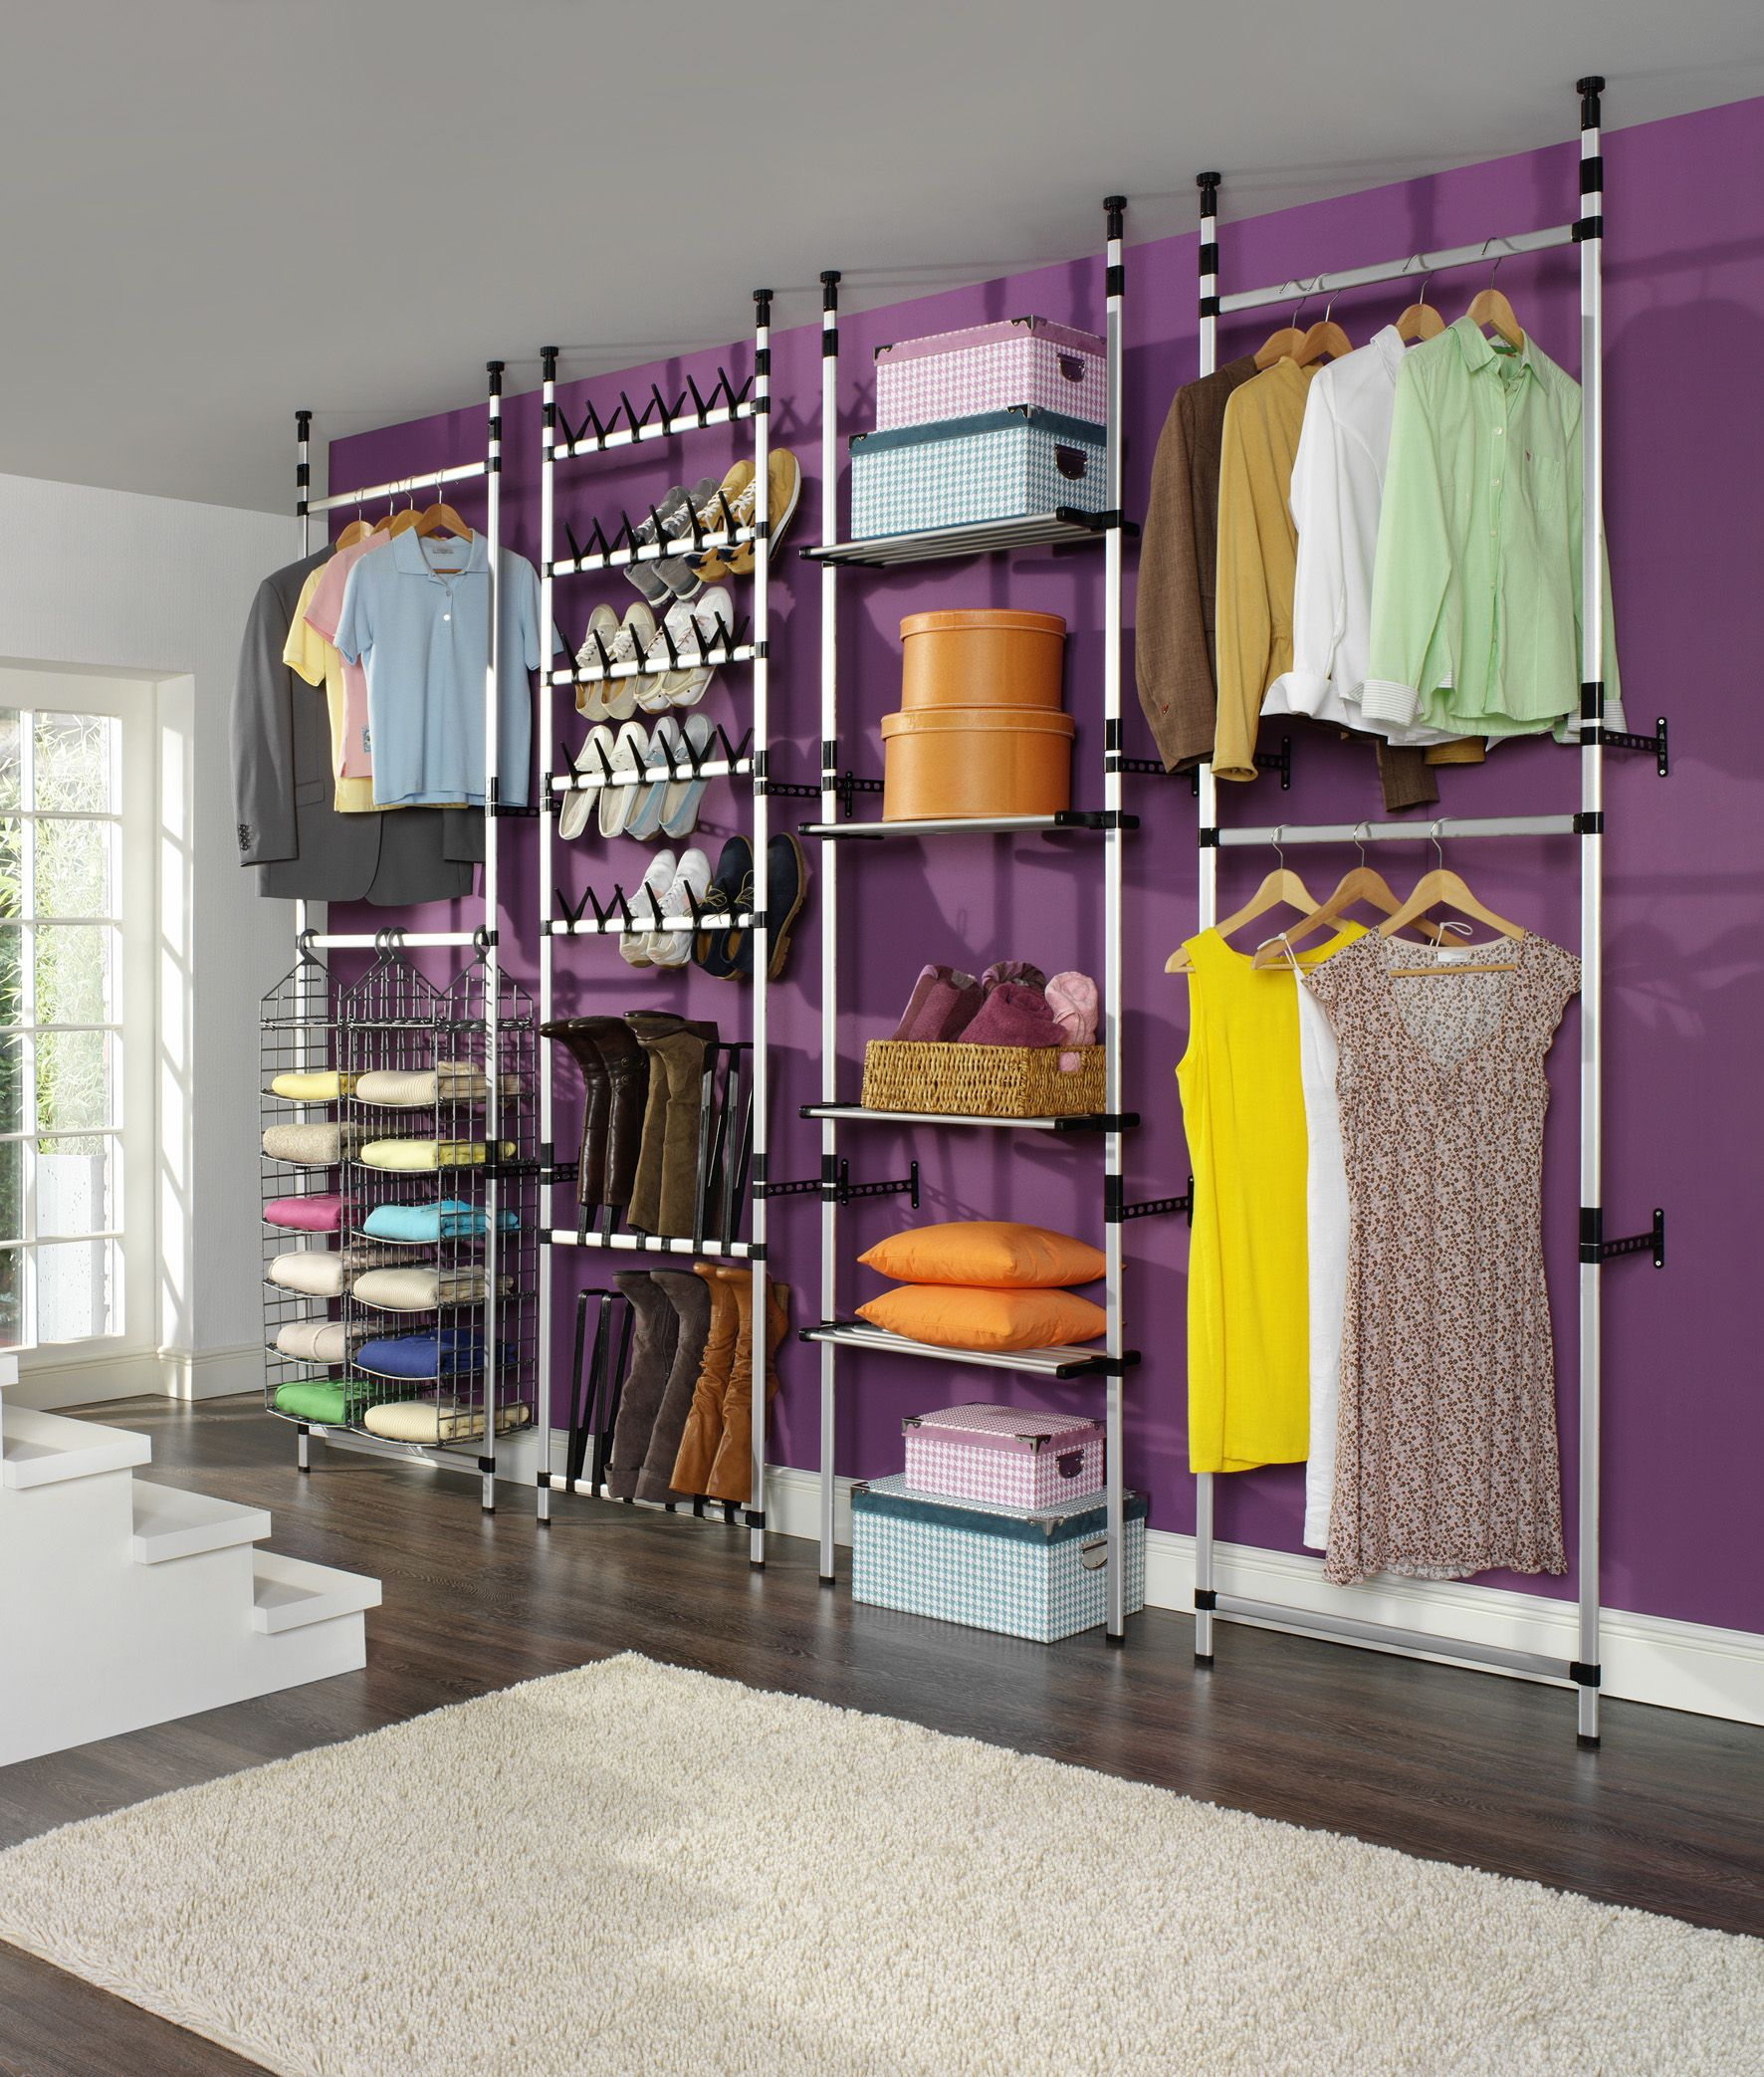 An Innovative And Versatile Storage Solution For Clothes Shoes Hats And More Diy Clothes Storage Closet Storage Design Closet Decor